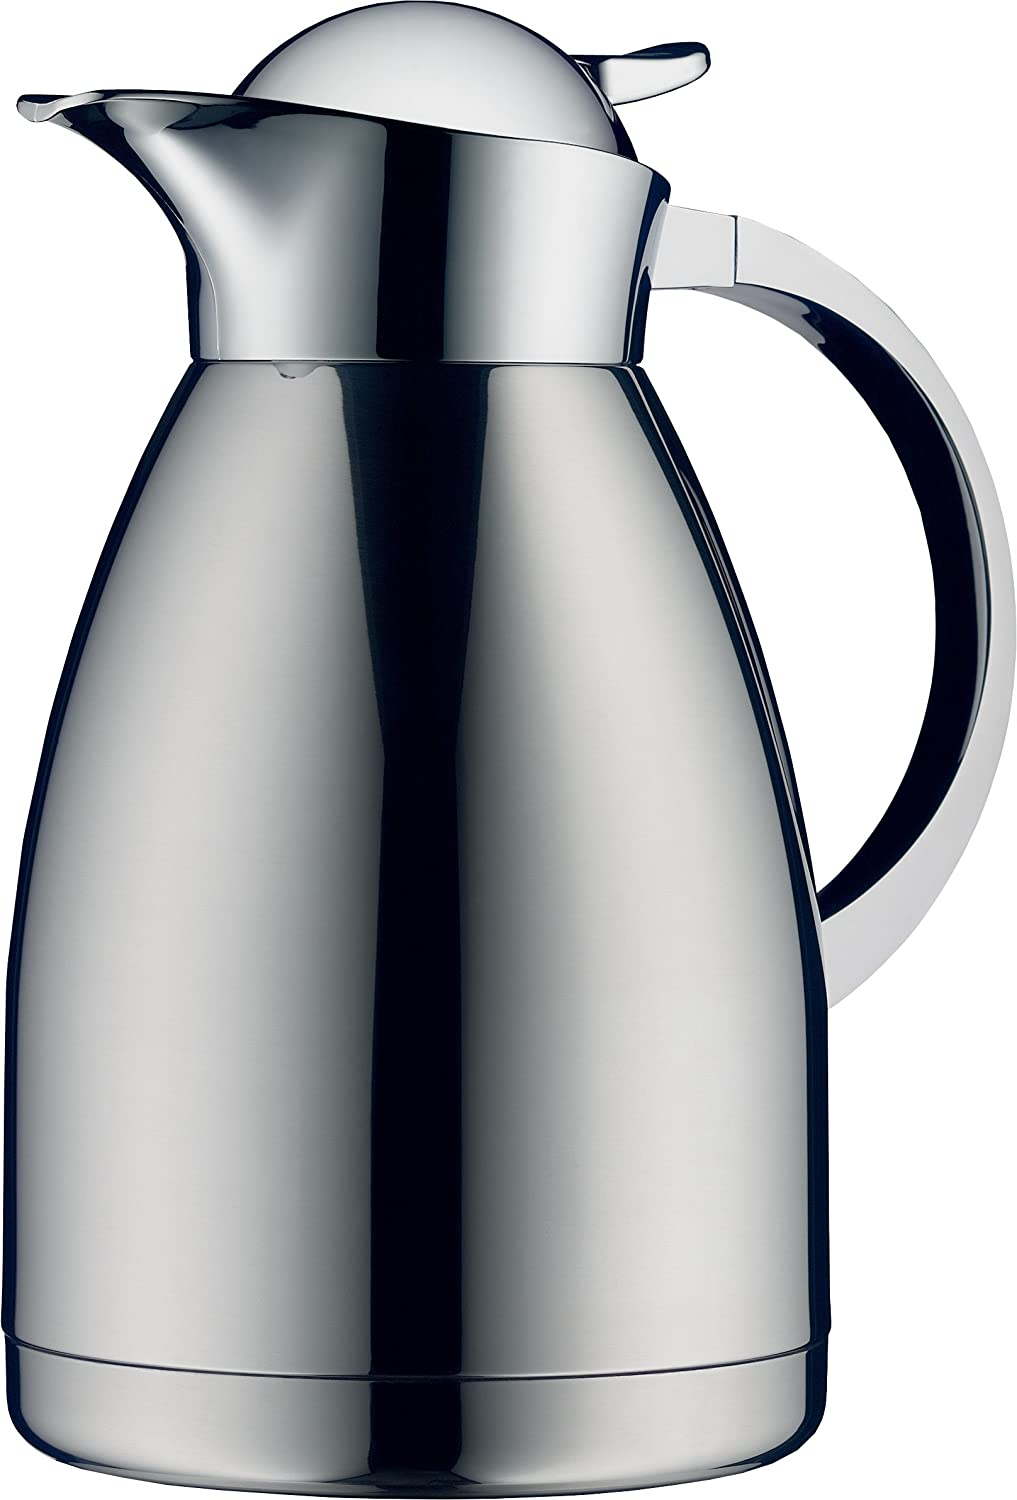 Alfi Albergo 1.5 Liter Top Therm Vacuum Insulated Carafe for Hot and Cold Beverages, Stainless Steel